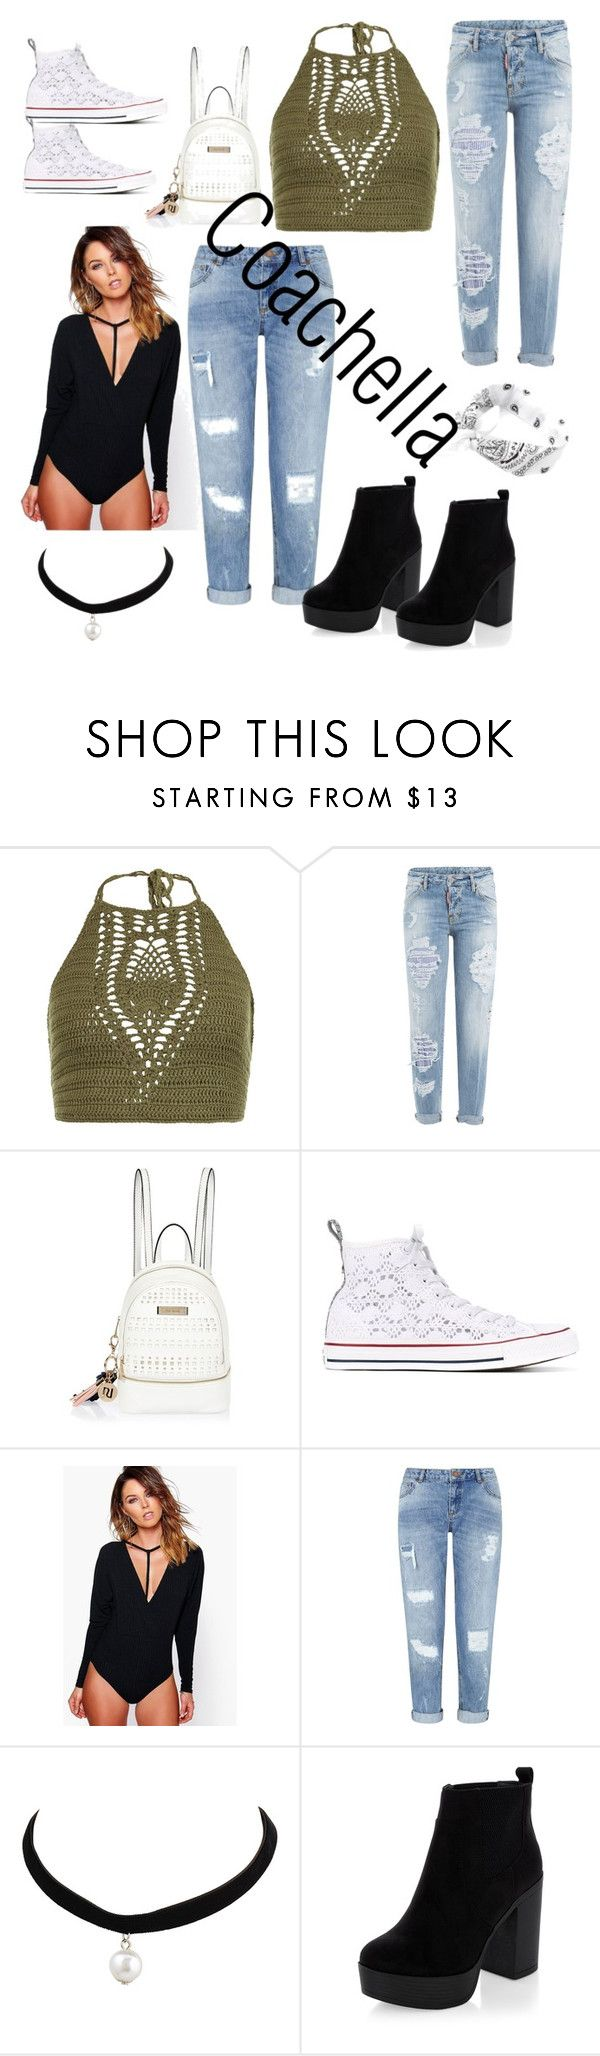 """""""Coachella weekend 1 ootd ideas"""" by itsbrianasanders on Polyvore featuring New Look, Dsquared2, River Island, Converse, Boohoo and Miss Selfridge"""